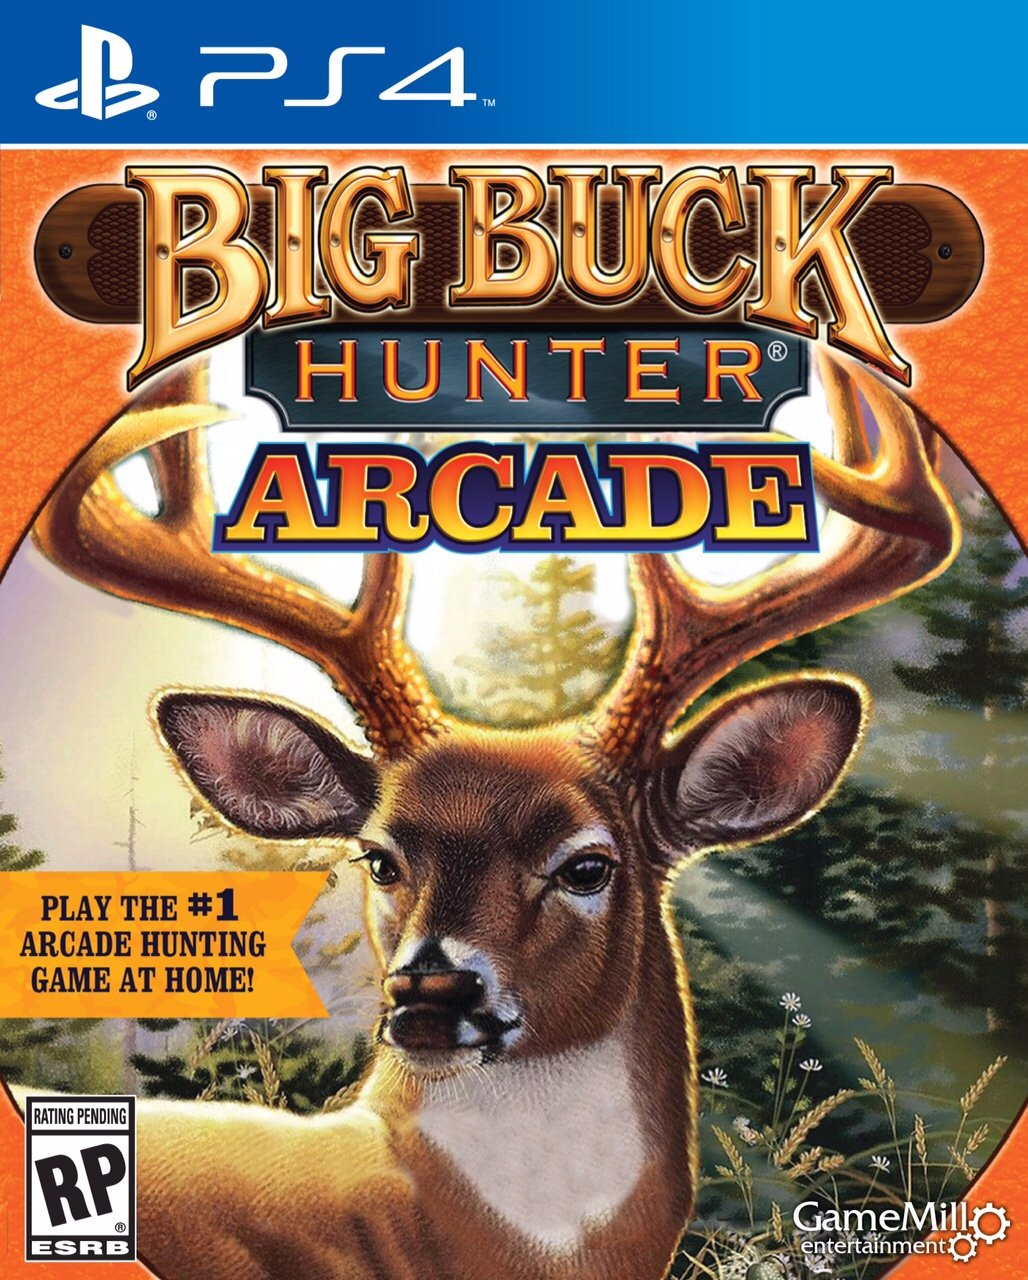 Big Buck Hunter Arcade